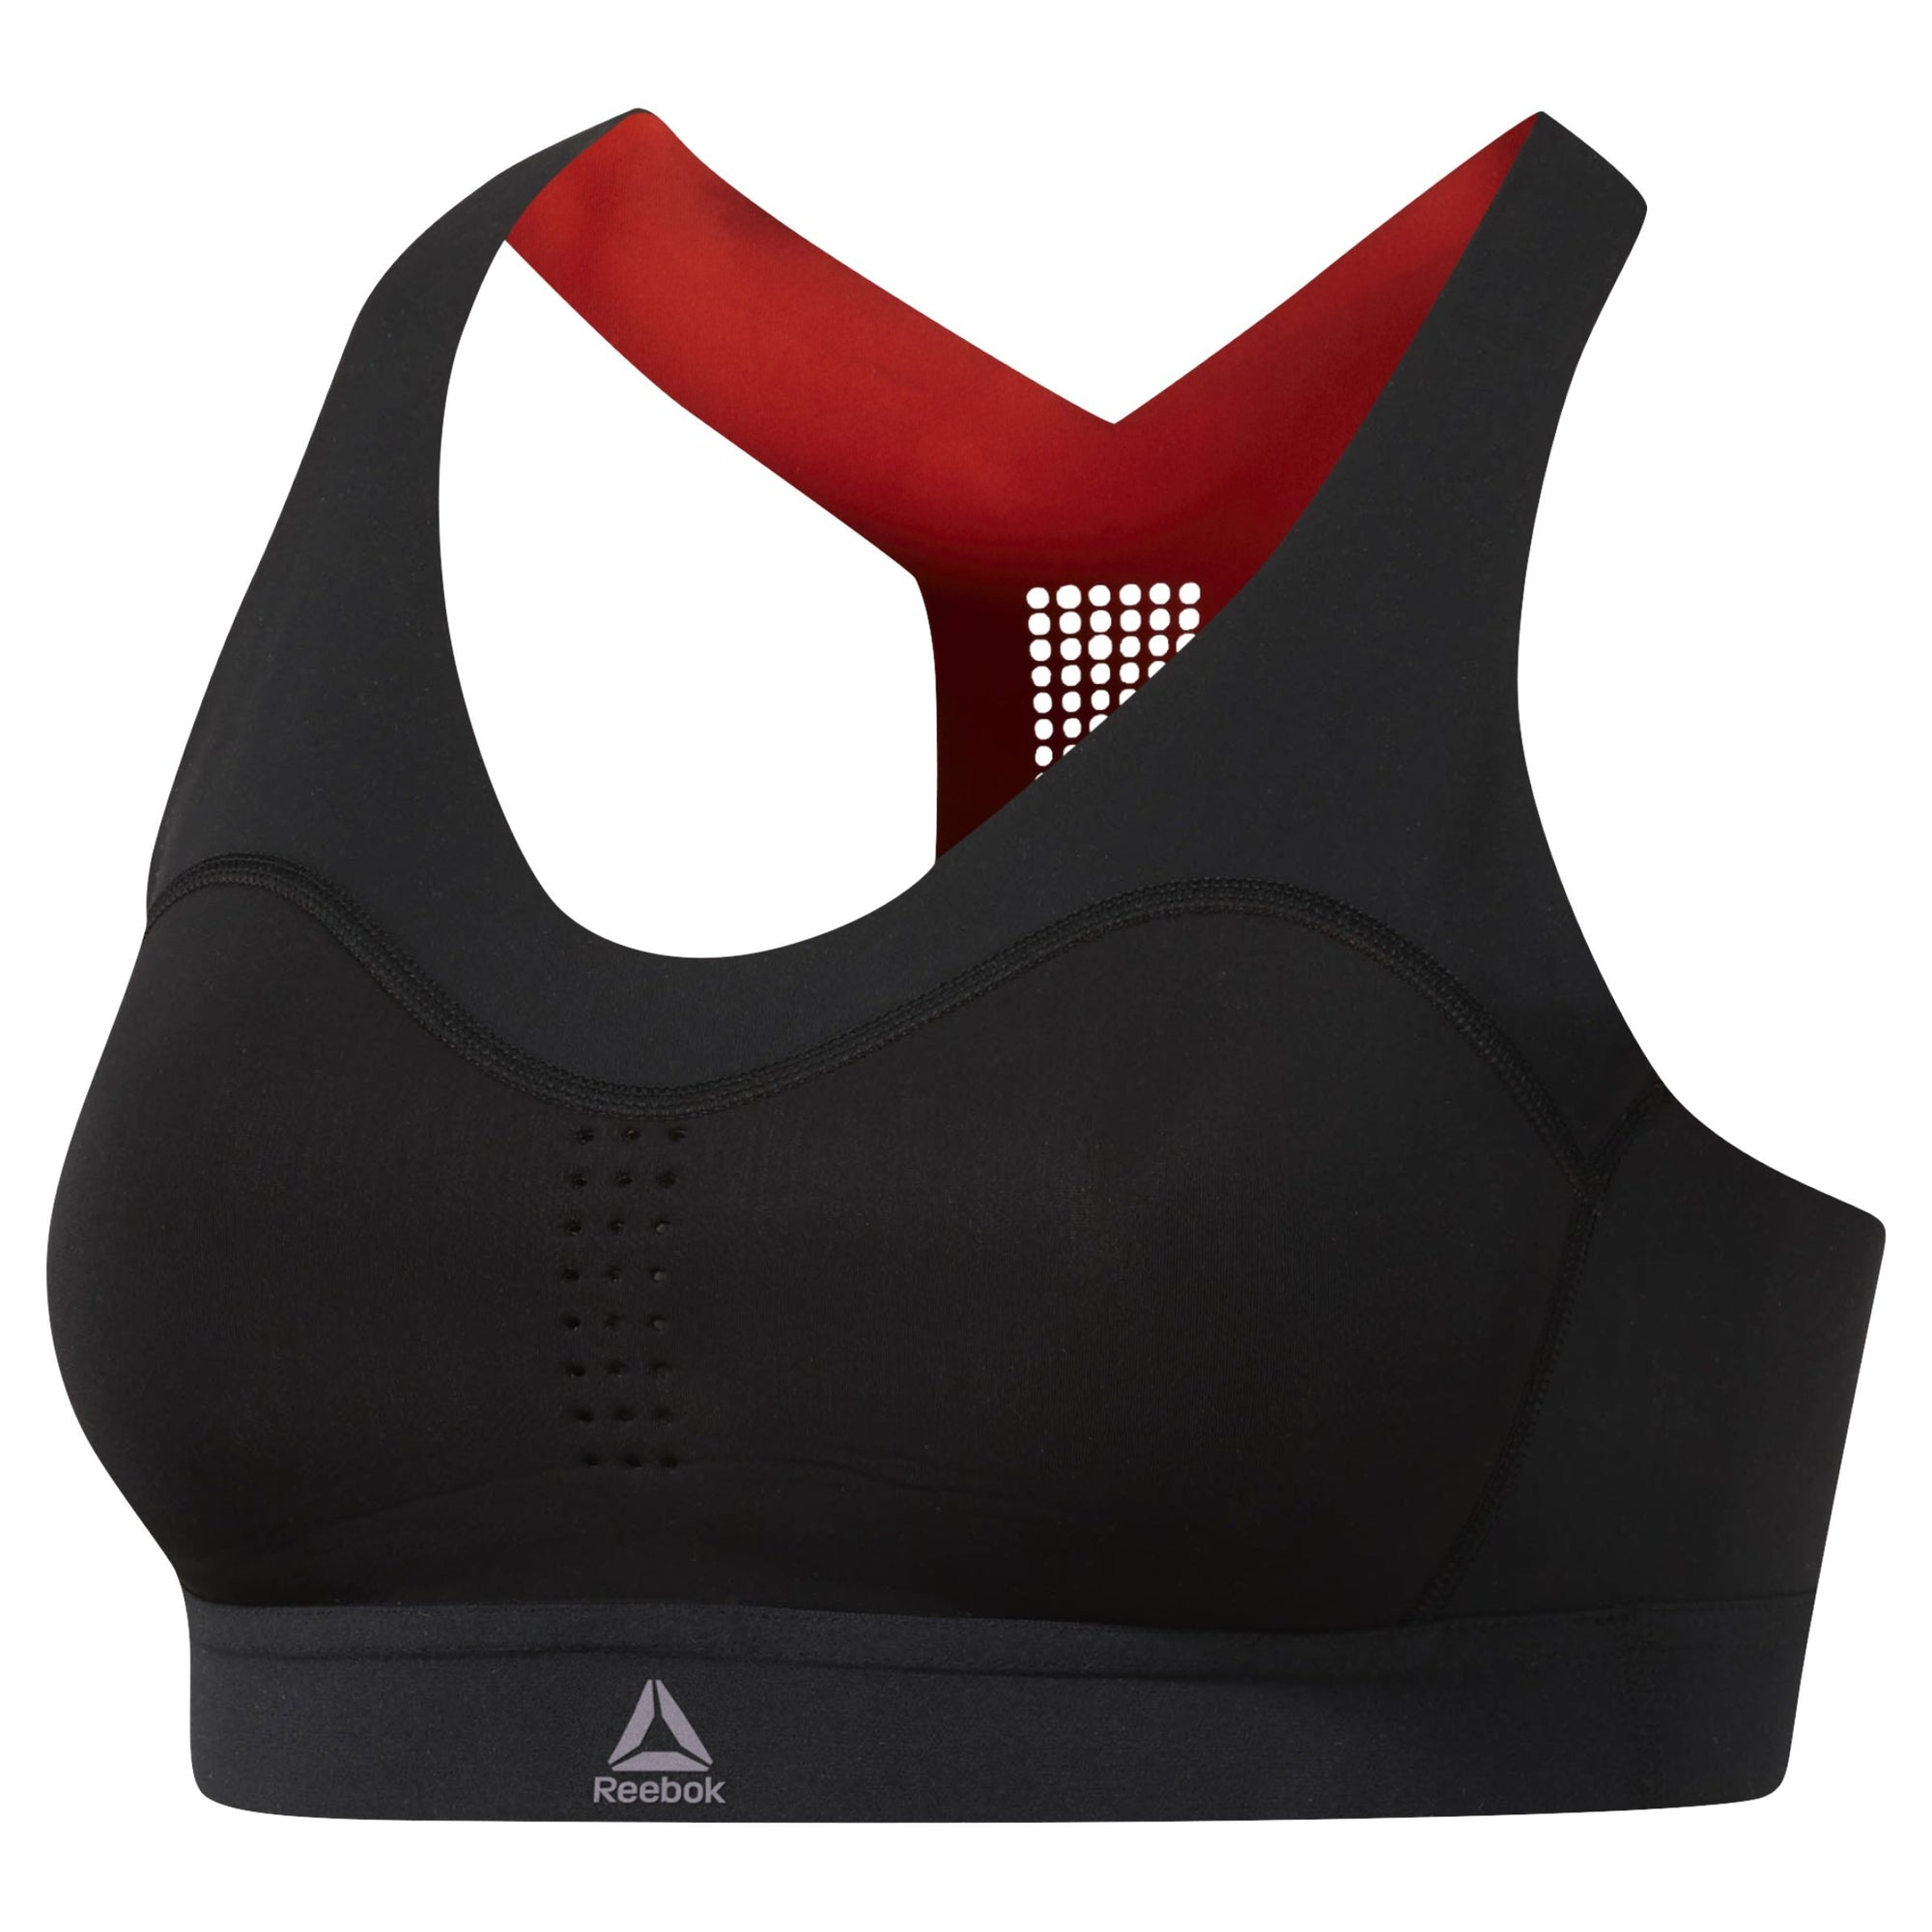 5df1545535c4f Buy Reebok Women Puremove Sports Bra